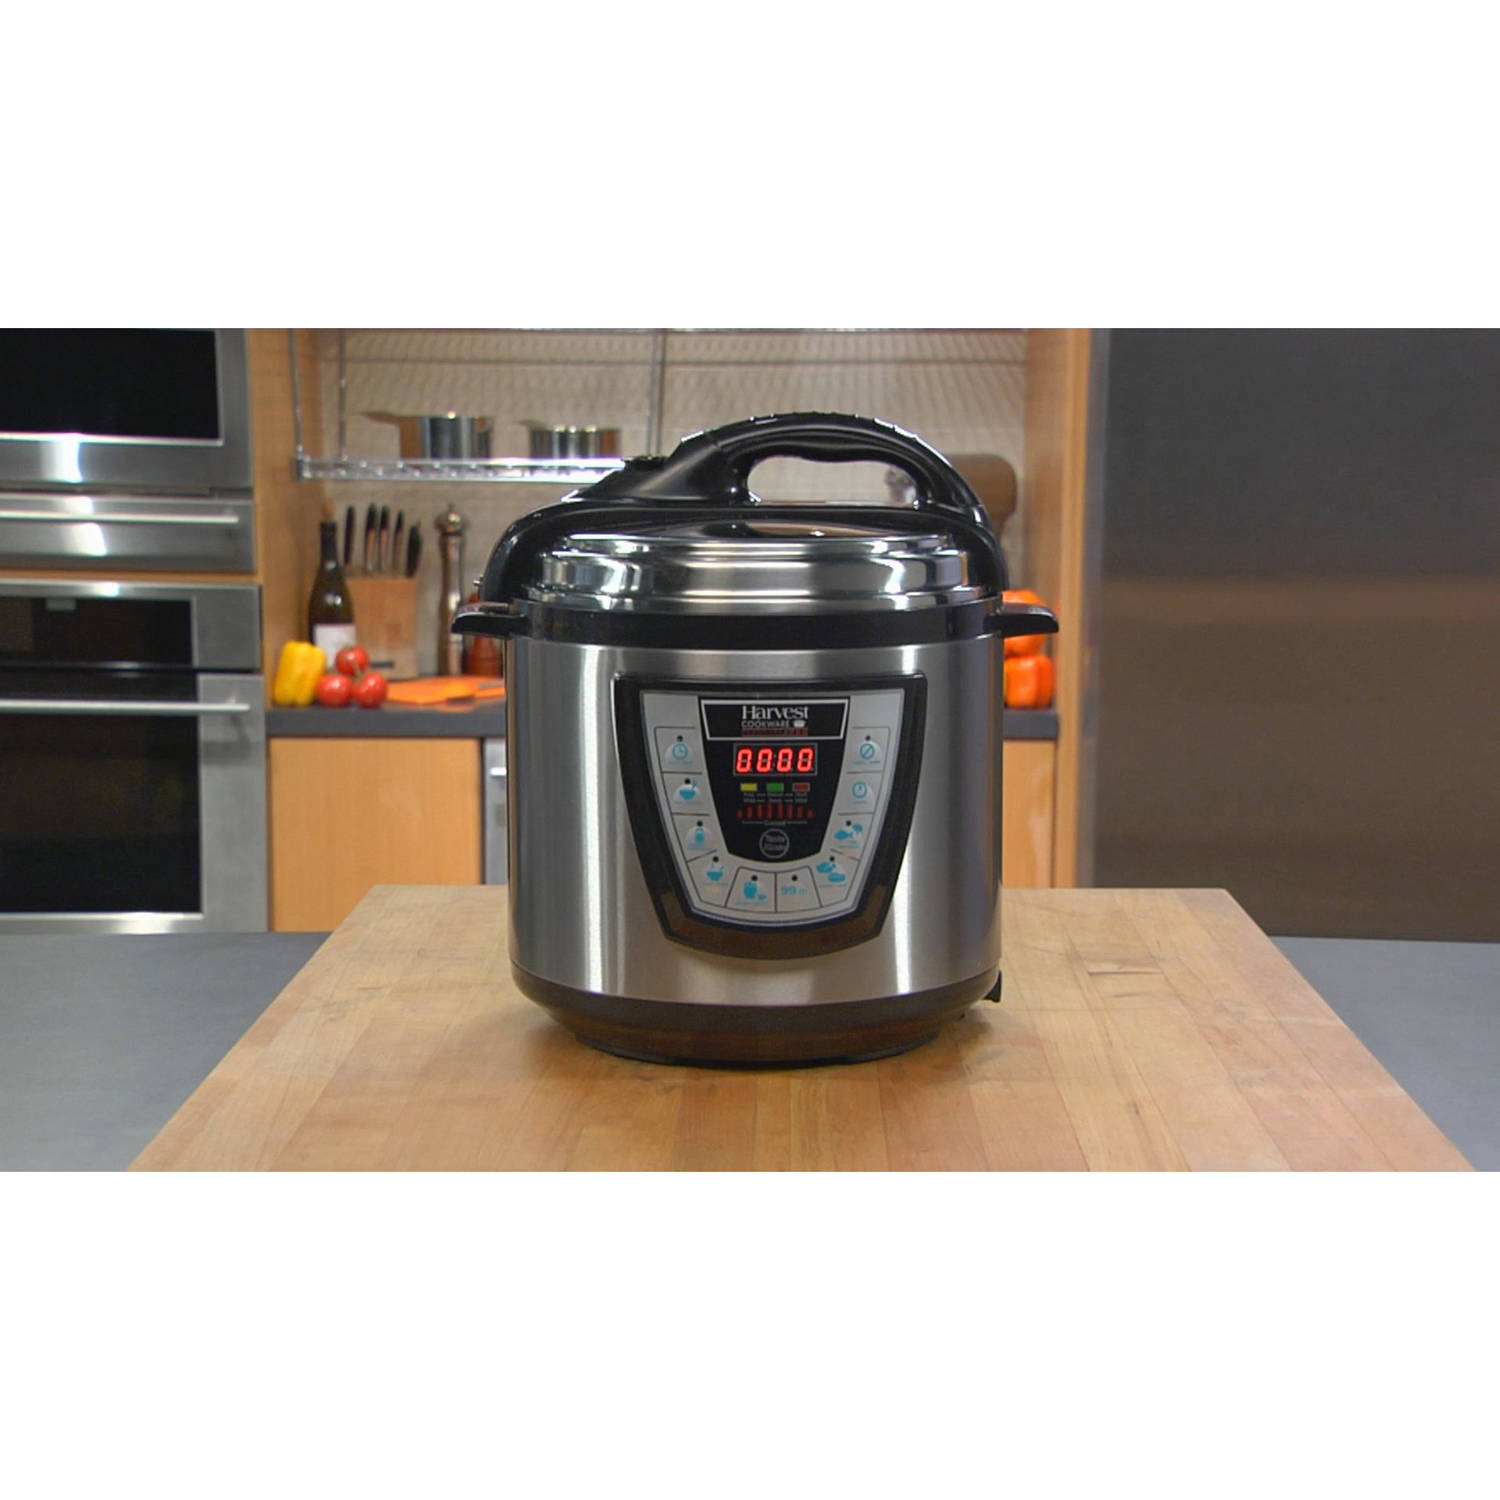 Harvest Cookware Electric Original Pressure Pro 6-Quart Pressure Cooker, Black